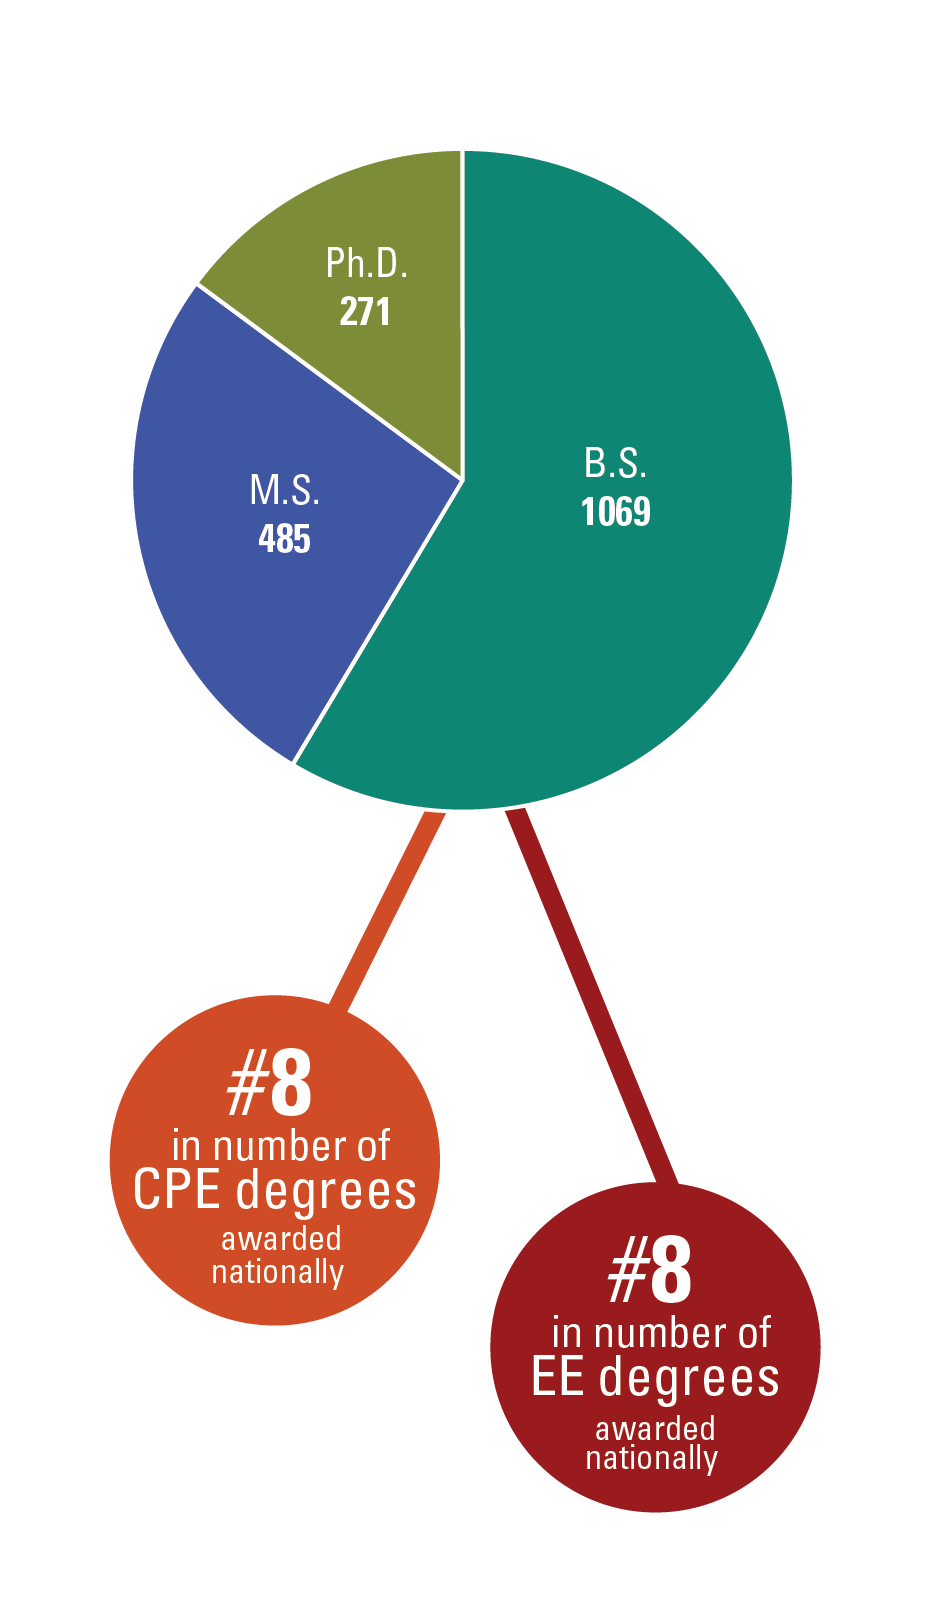 Rankings according to ASEE